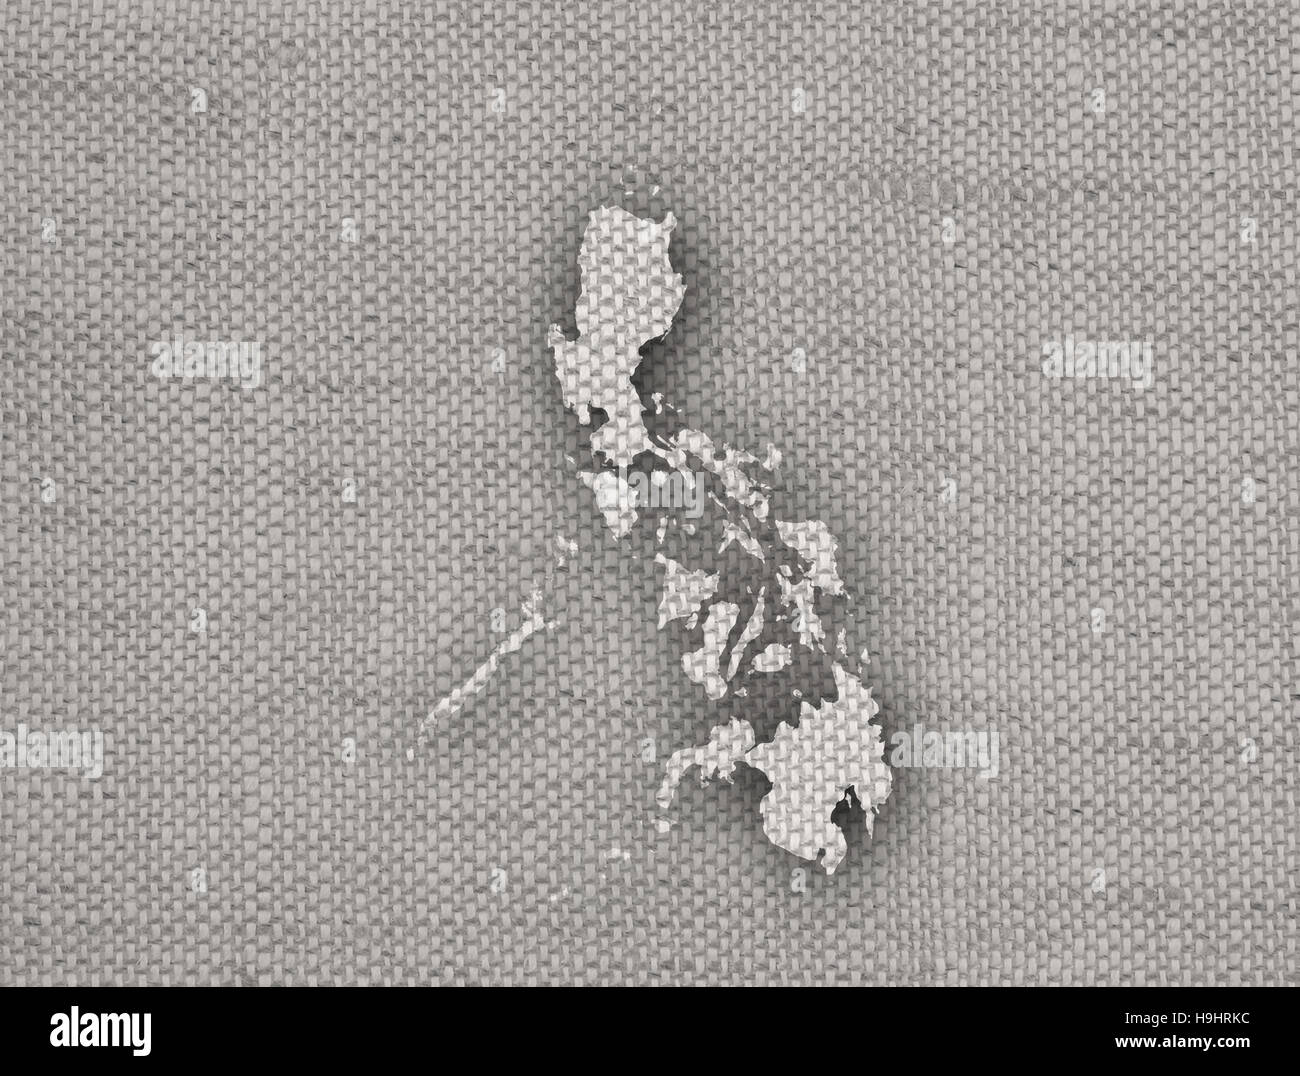 Map of the Philippines on old linen Stock Photo Royalty Free